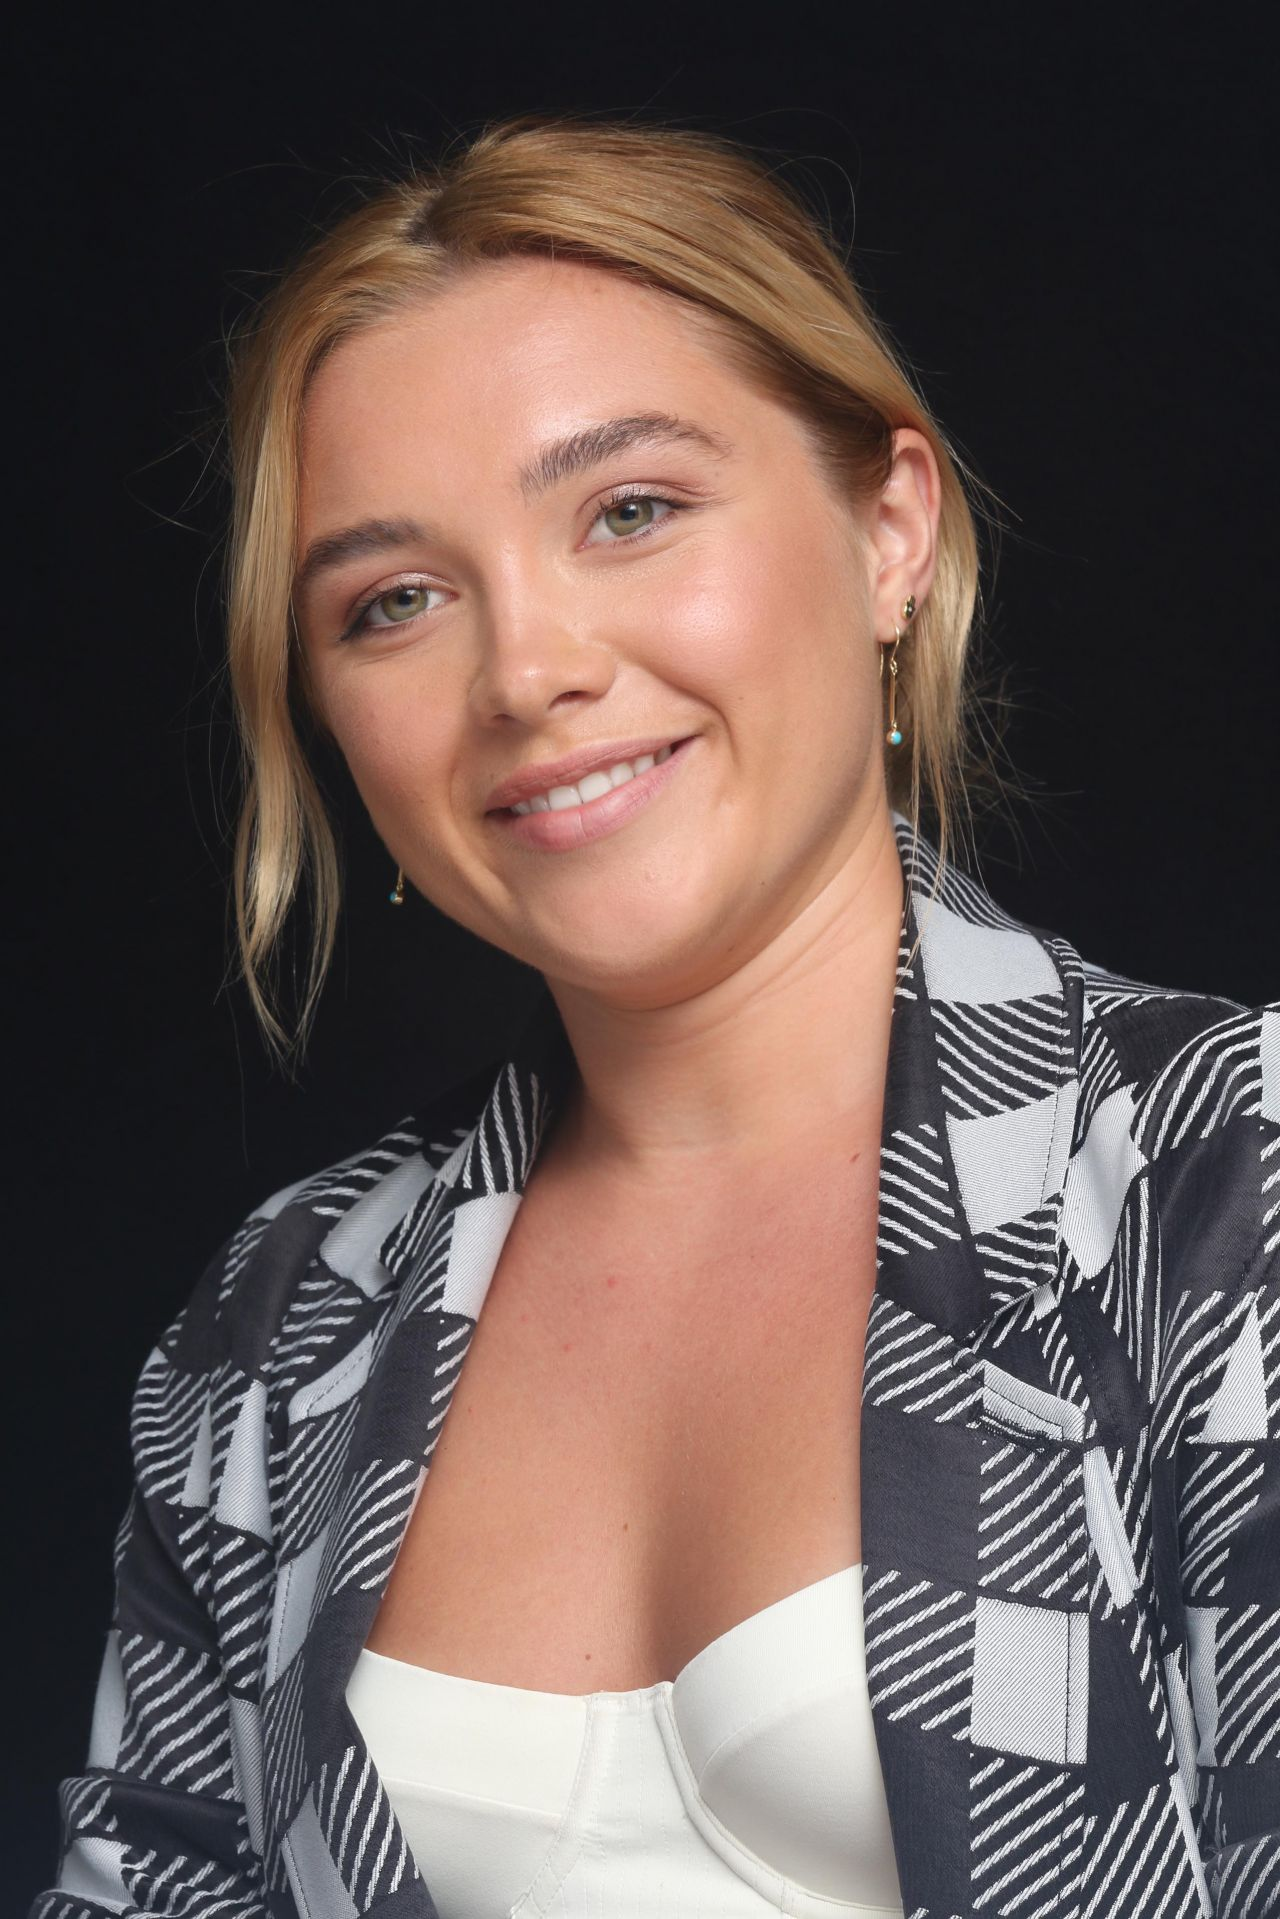 ICloud Florence Pugh nude (95 photo), Pussy, Fappening, Twitter, braless 2006